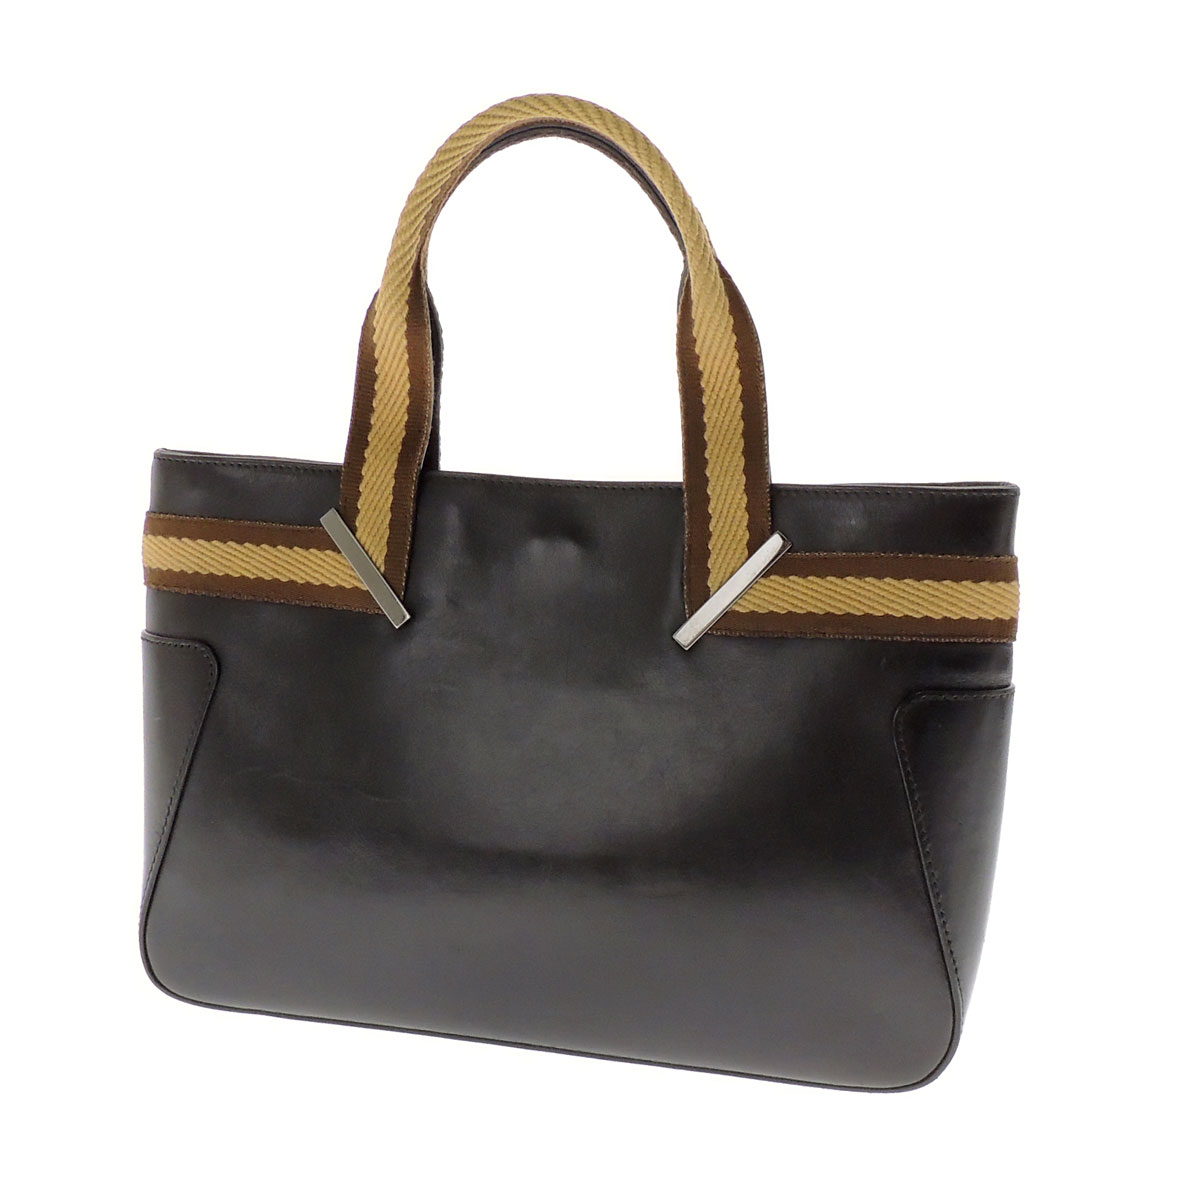 GUCCI plate with a tote bag canvas / Leather Womens